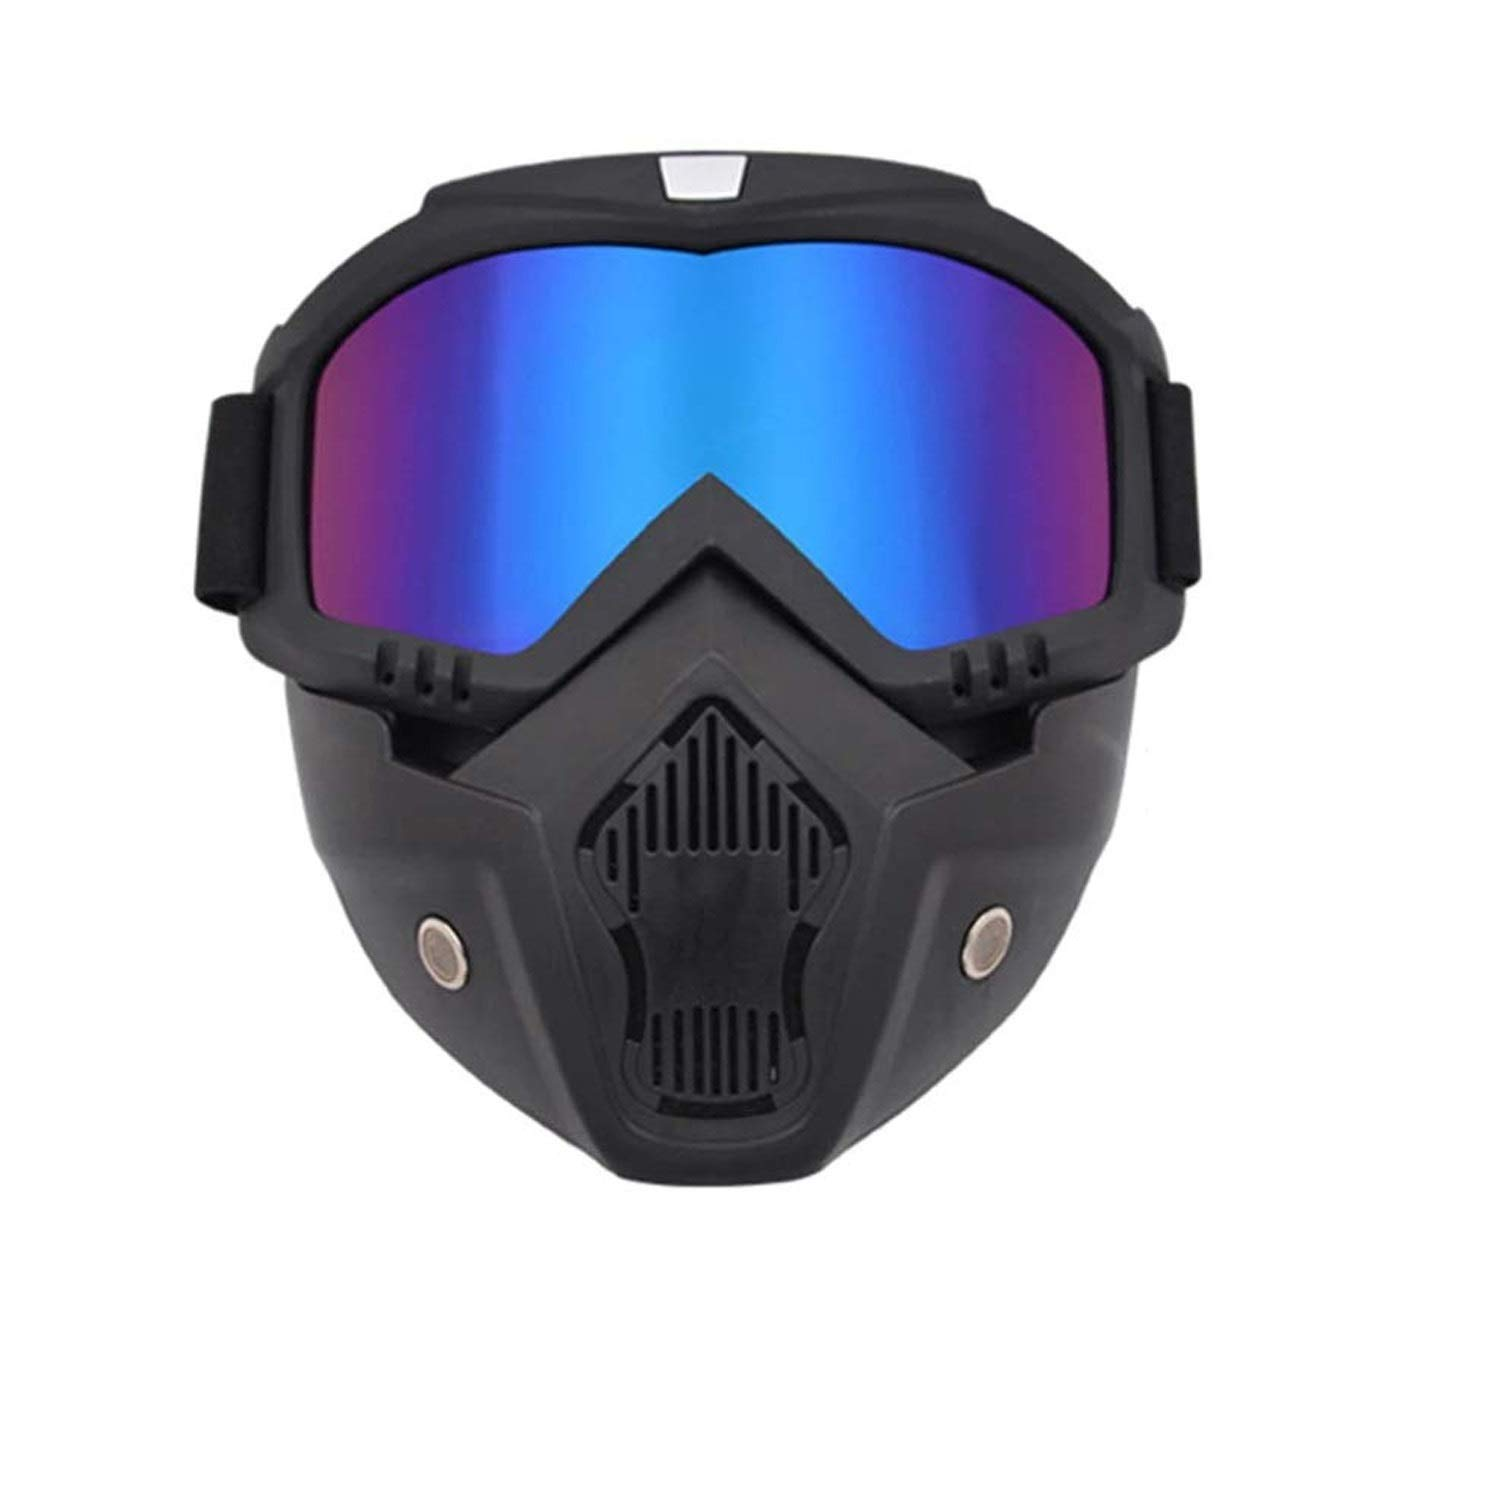 Goggles with mask (3)